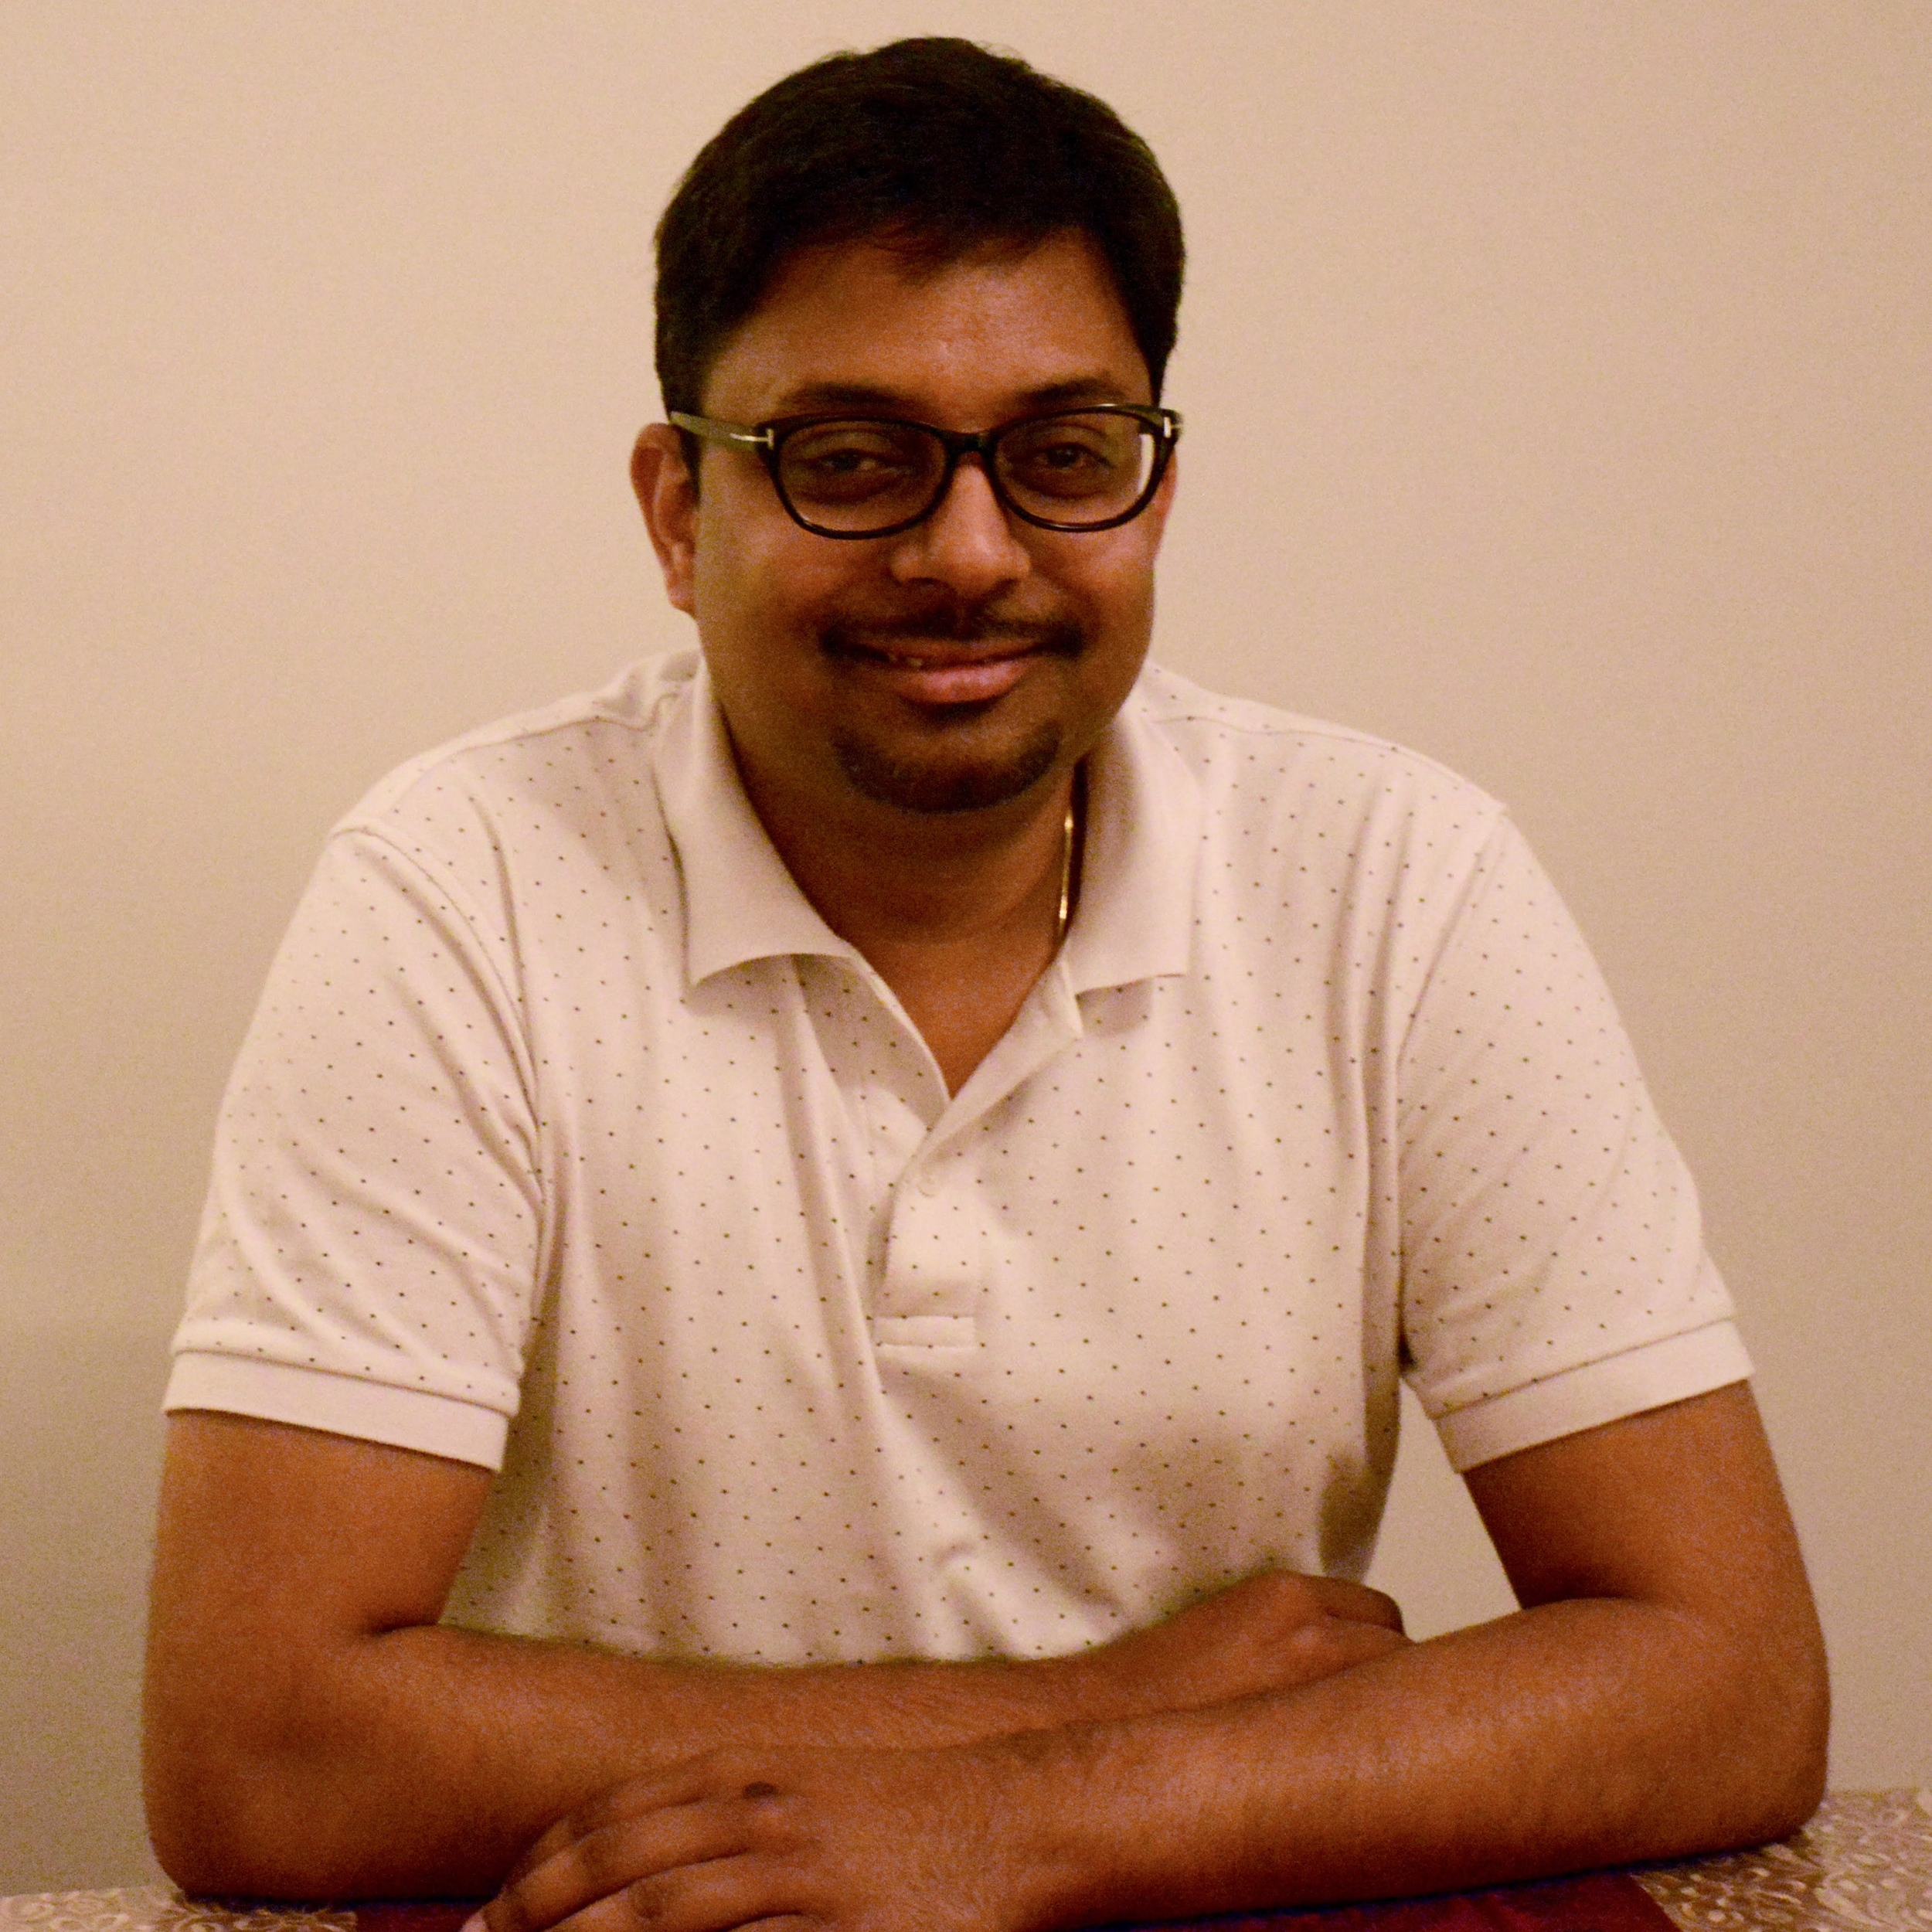 Dipesh Jain - Dipesh Jain - Director, Screenwriter, Producer Director's Guild Of America (DGA) Student Award recipient, Dipesh Jain is a graduate of University of Southern California Film School. He has written, directed and produced award-winning films, documentaries and stage plays in India, Prague and US. Before USC he studied at Prague Film School and also has Chartered Accountancy and CPA. 11 WEEKS, his thesis film at USC, was shot in terrorist areas of Kashmir with local people and real army. The film has screened at numerous film festivals such as Chicago, Mexico, Melbourne, Heartland and USA FF and won awards including Alfred P. Sloan, Carole Fielding, Best Short at 35th Cleveland Intl FF, Finalist at USA FF. His other films, including 5 QUESTIONS 5 CHANCES, have played festivals in Asia and Europe. A recipient of Panavision Young Filmmaker Award, Dipesh has been selected for the Talents Lab at the 64th Berlin International Film Festival and the Producer's Lab at the International Film Festival of India (IFFI). Dipesh wants to make strong character driven films for the international audience and has several feature screenplays set in US, UK and India at various stages of development. His screenplay A STONE'S THROW AWAY, a political drama set in Kashmir, was placed semi-finalist in the Sundance Screenwriting Lab, and quarter- finalist in the American Zoetrope Screenplay Competition.